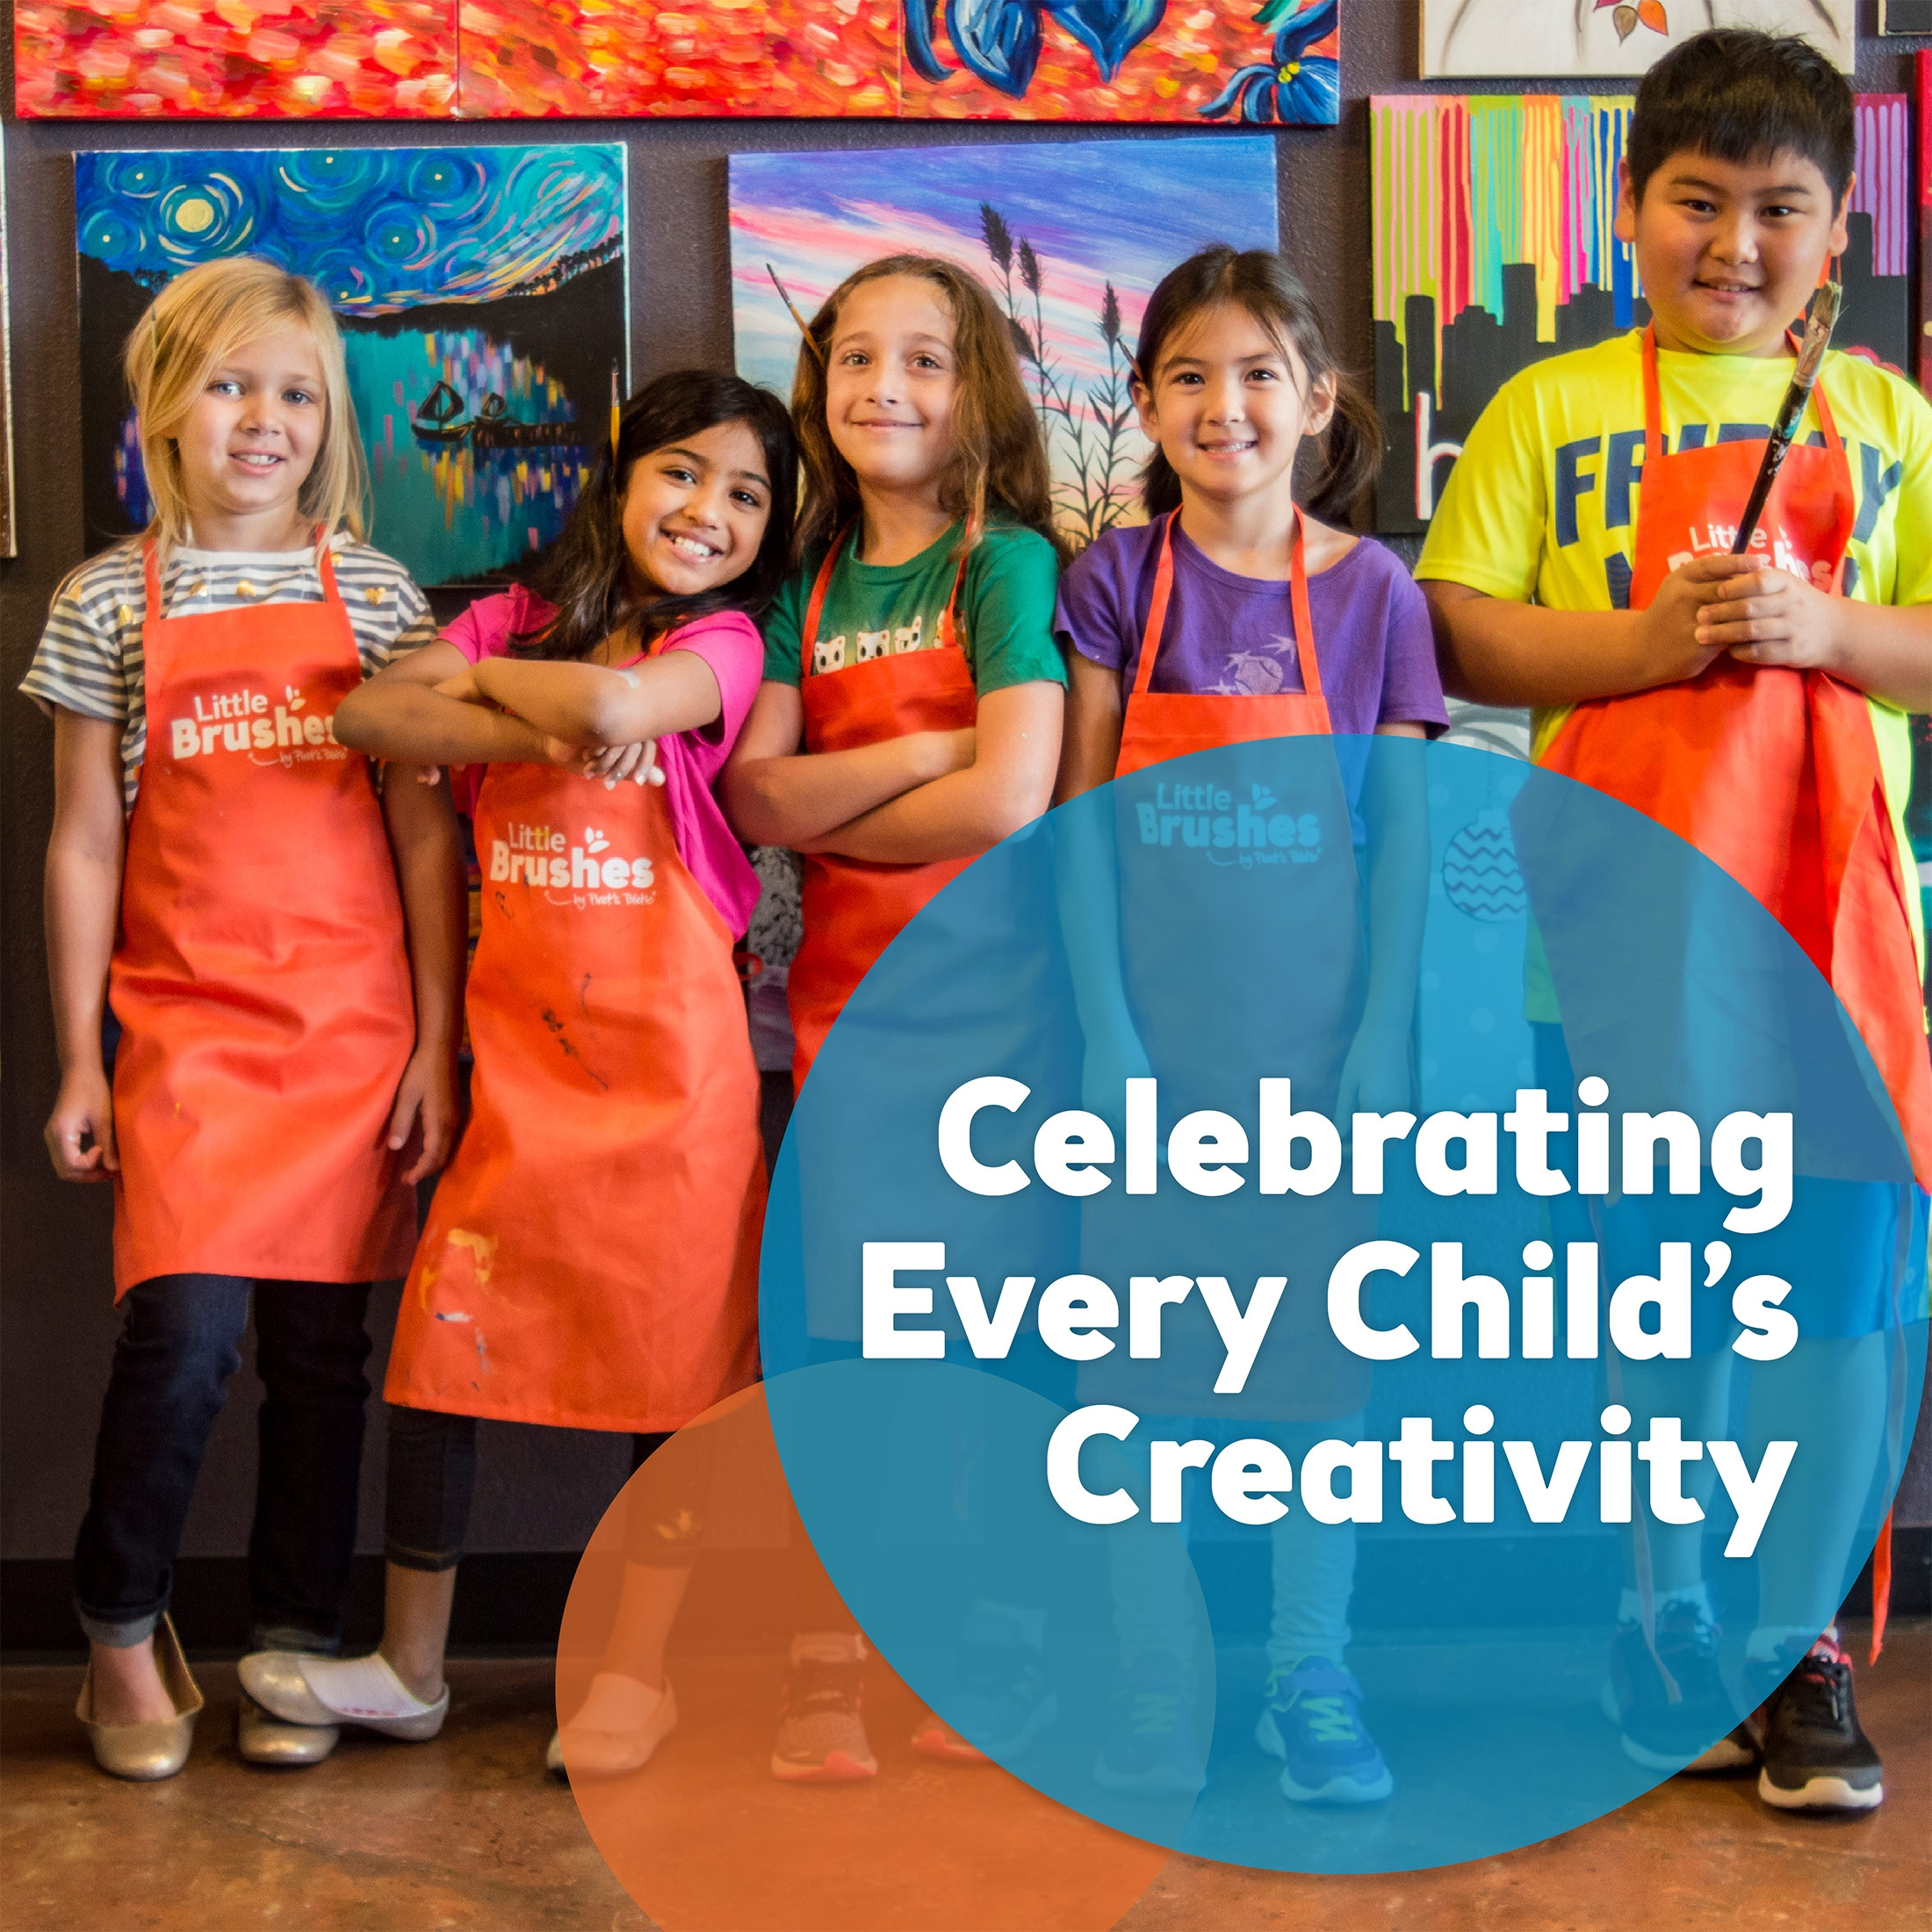 Kids Events Coming Soon to Pinot's-HB